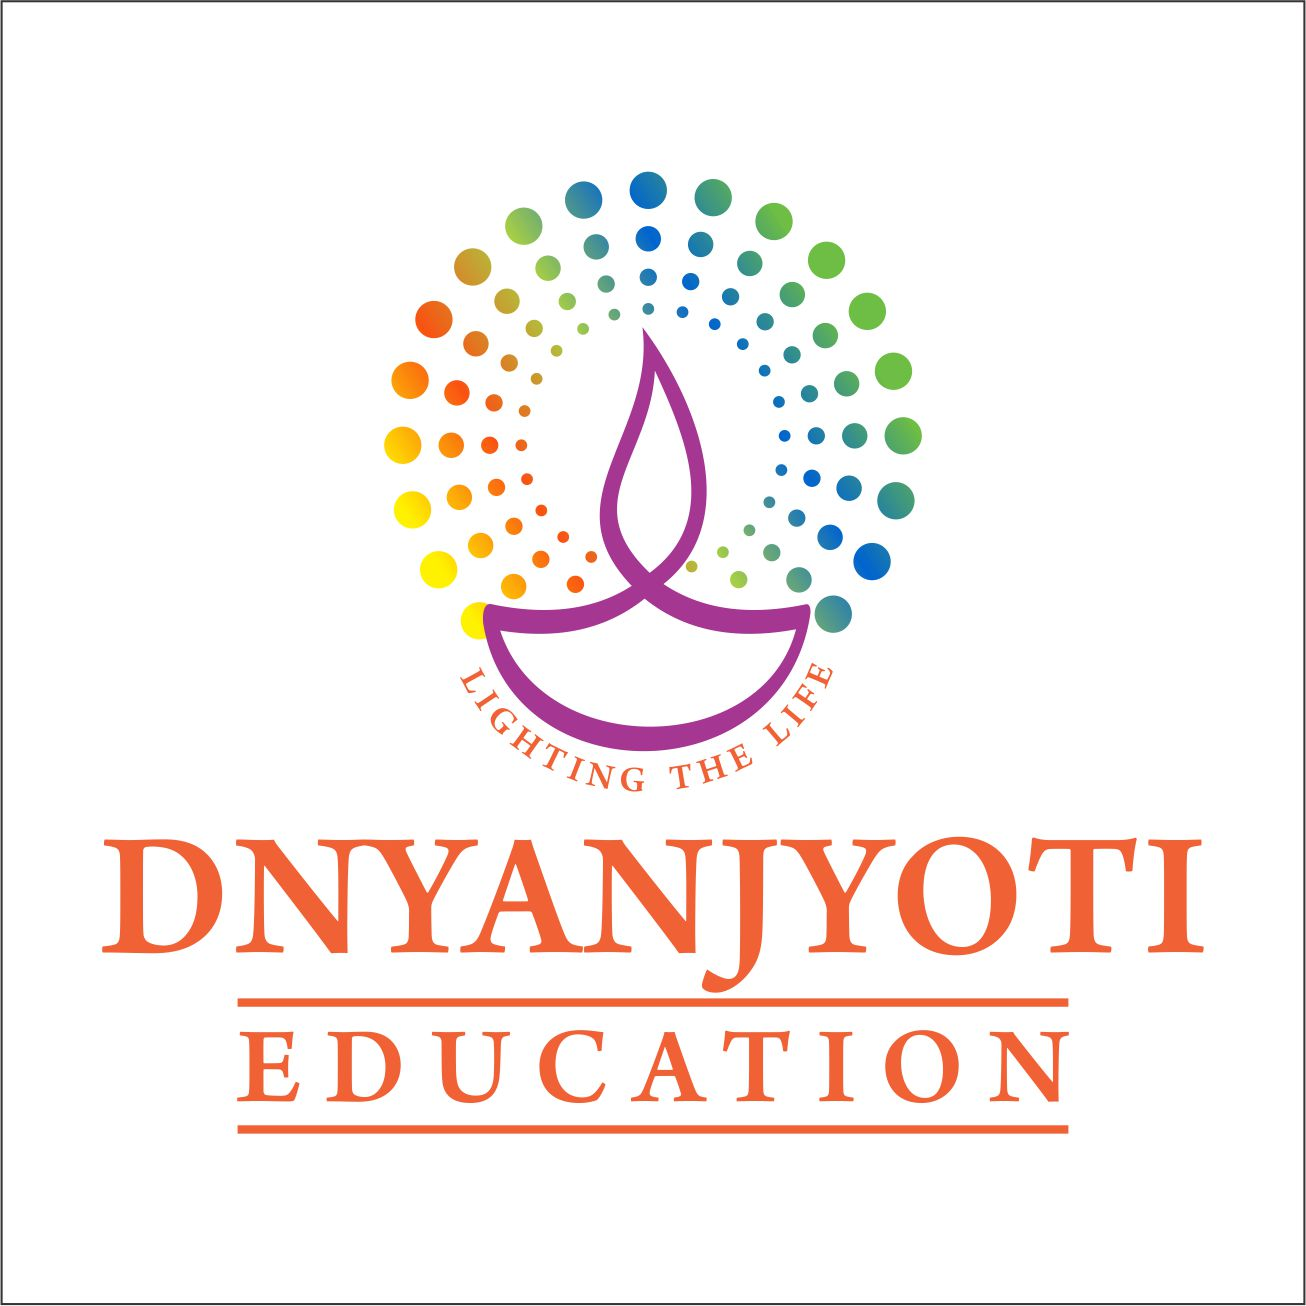 Dnyanjyoti Education